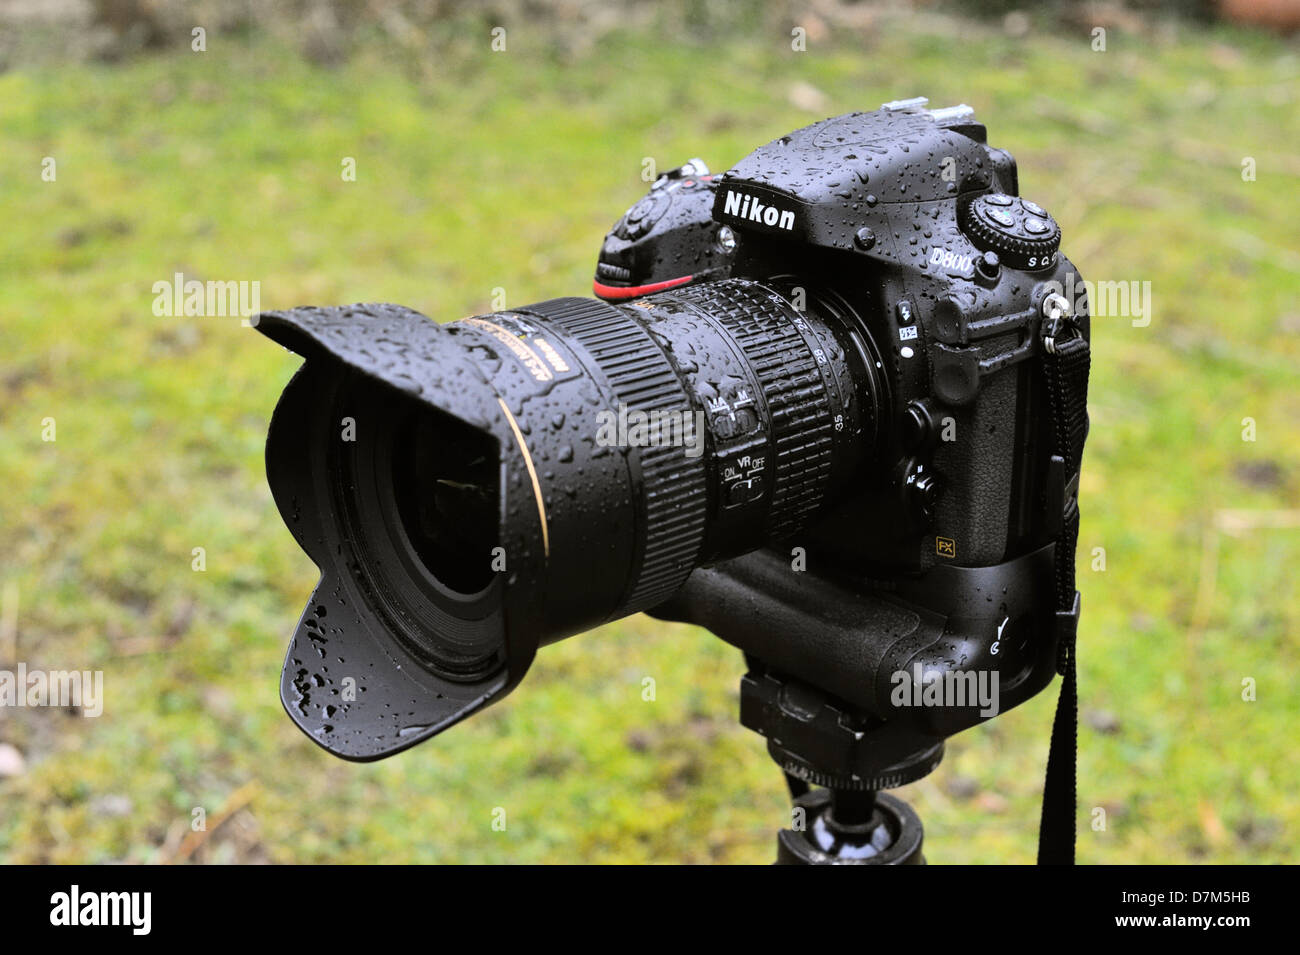 Nikon D800 digital SLR camera with MBD-12 battery grip and 16-35 f4 VR lens attached, soaking wet after exposure - Stock Image